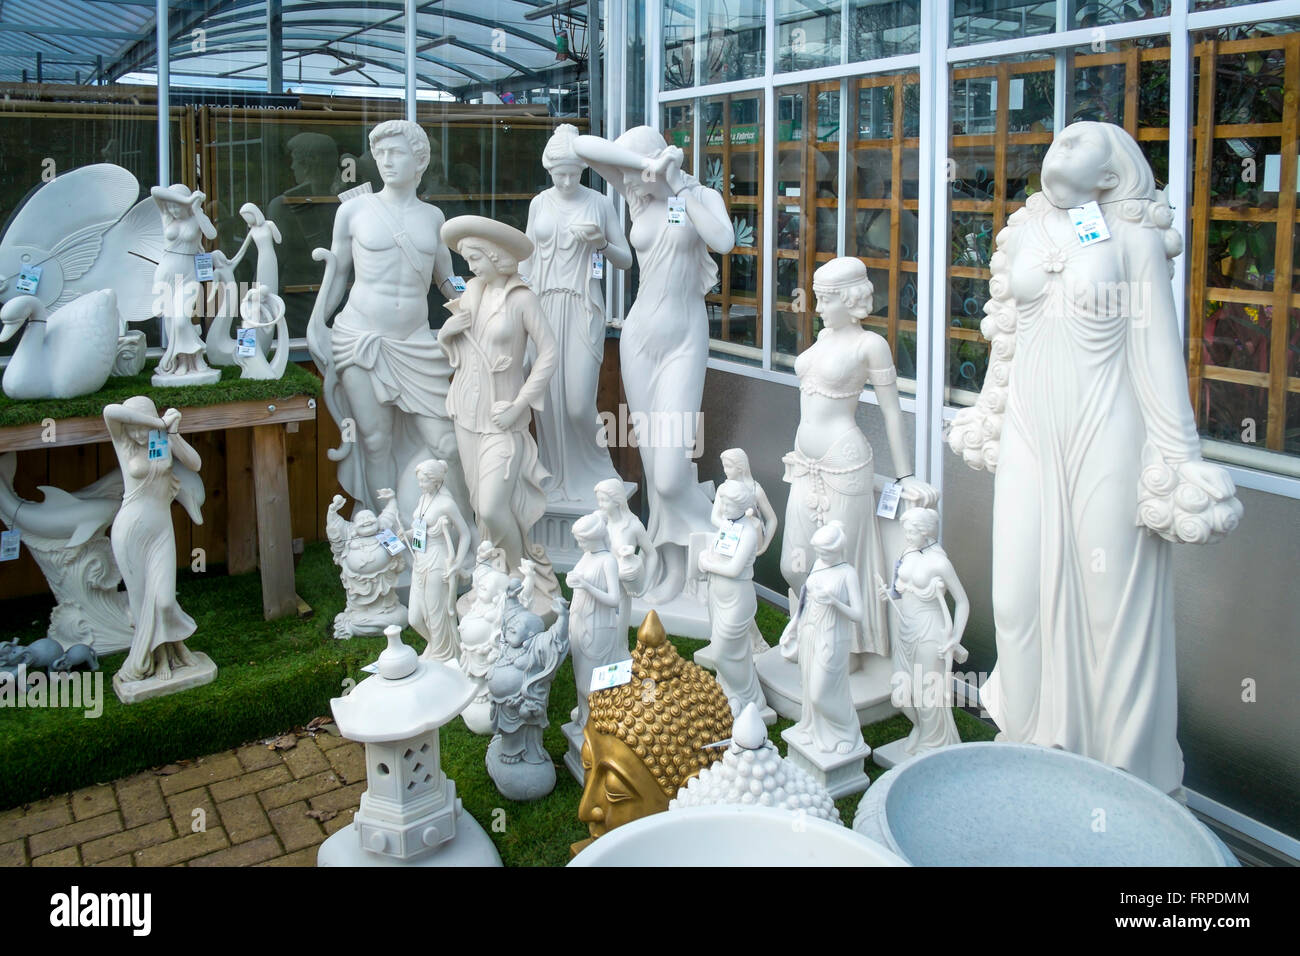 A Collection Of Garden Ornament Statues For Sale In A Garden Centre   Stock  Image